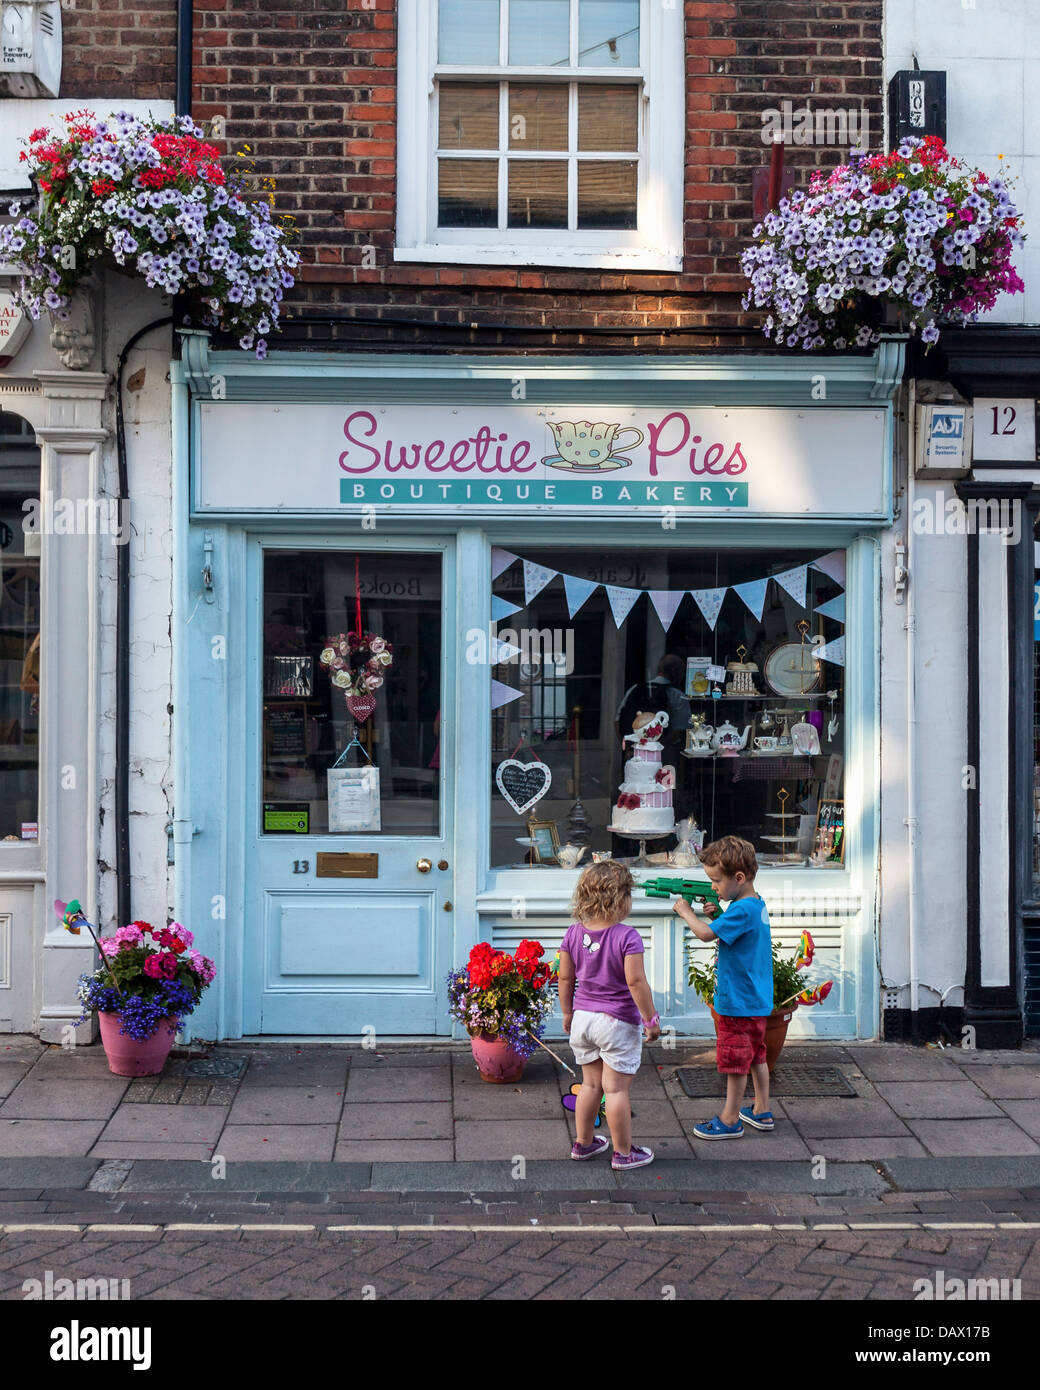 Two children play outside Sweetie Pies bakery in Church street, Twickenham, UK - Stock Image